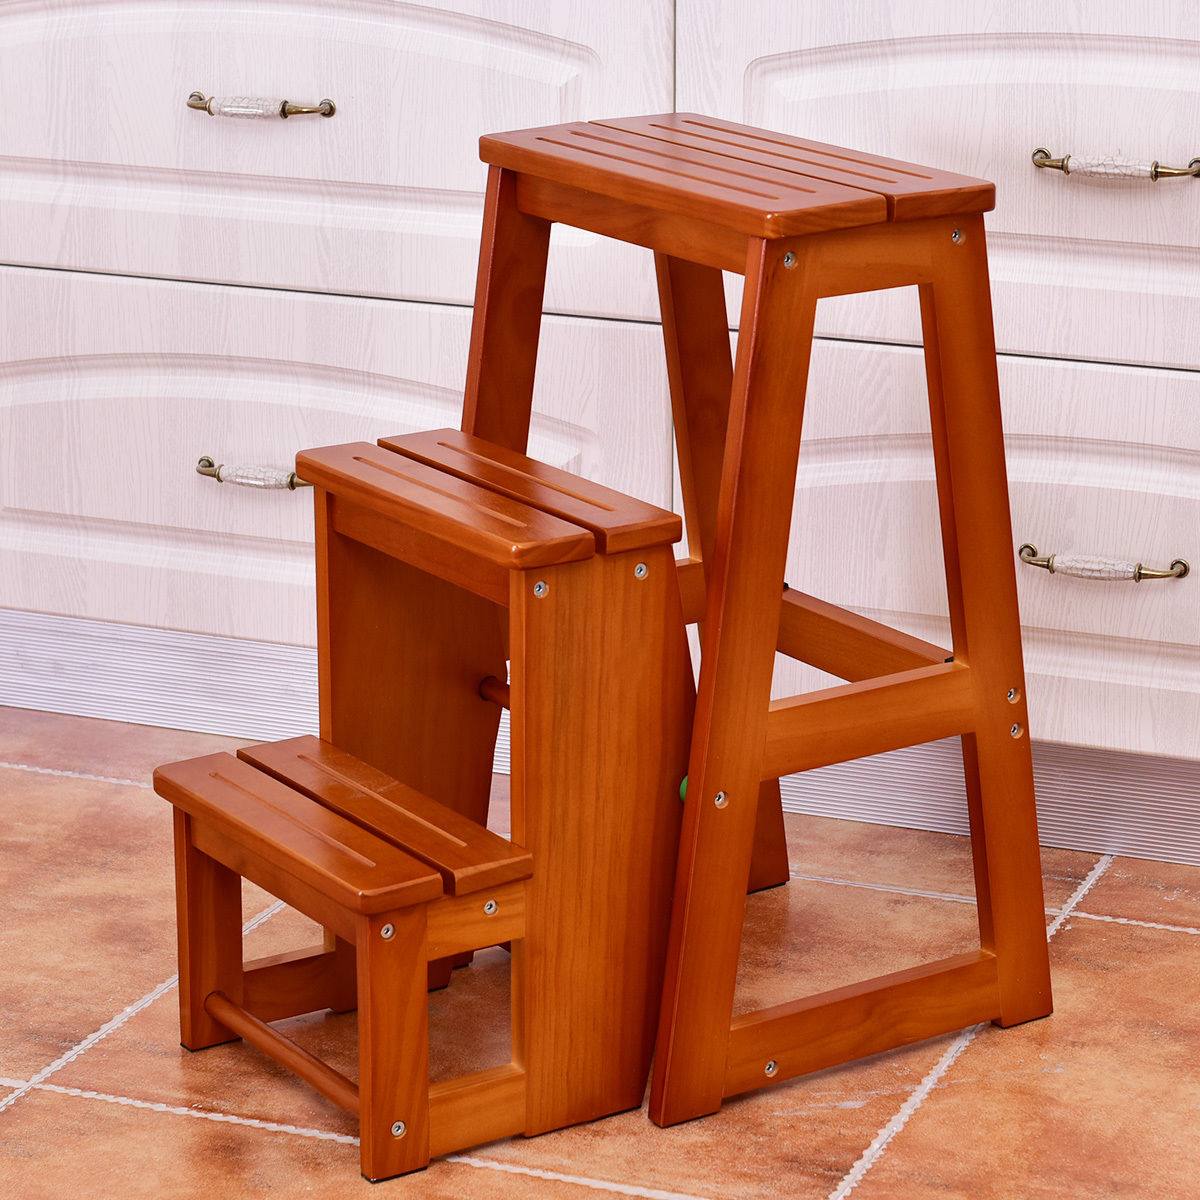 Costway Wood Step Stool Folding 3 Tier Ladder Chair Bench Seat Utility  Multi Functional